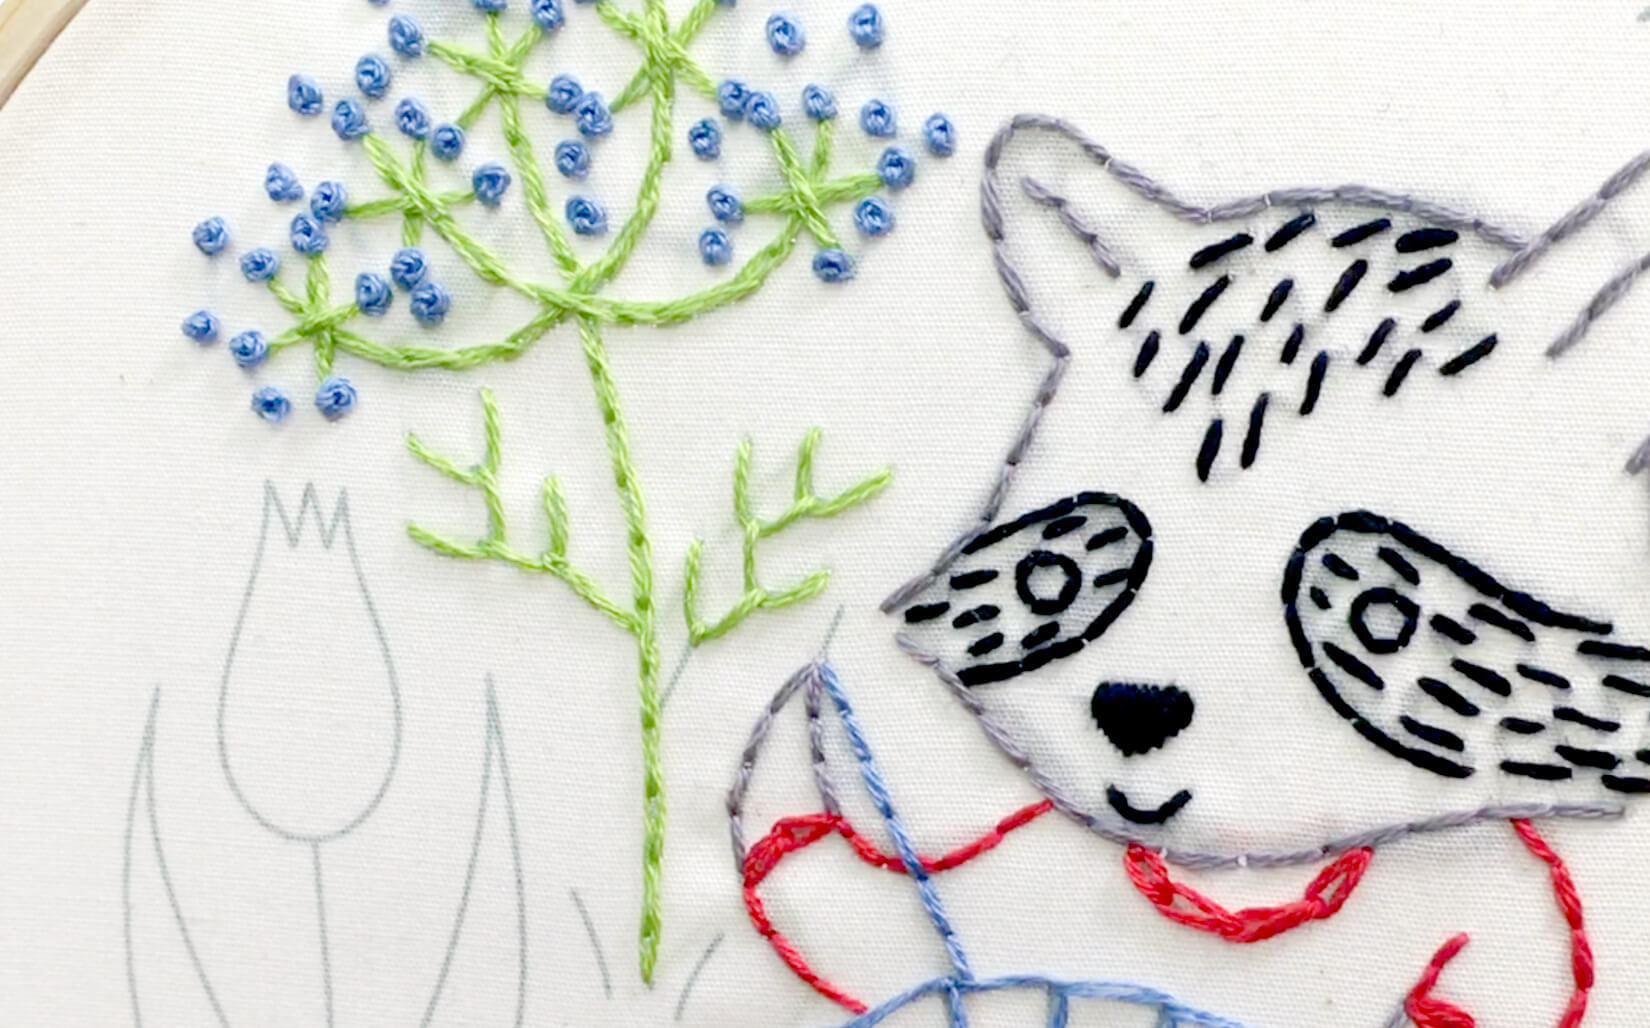 French knot stitch in the Stitching Raccoon Sampler